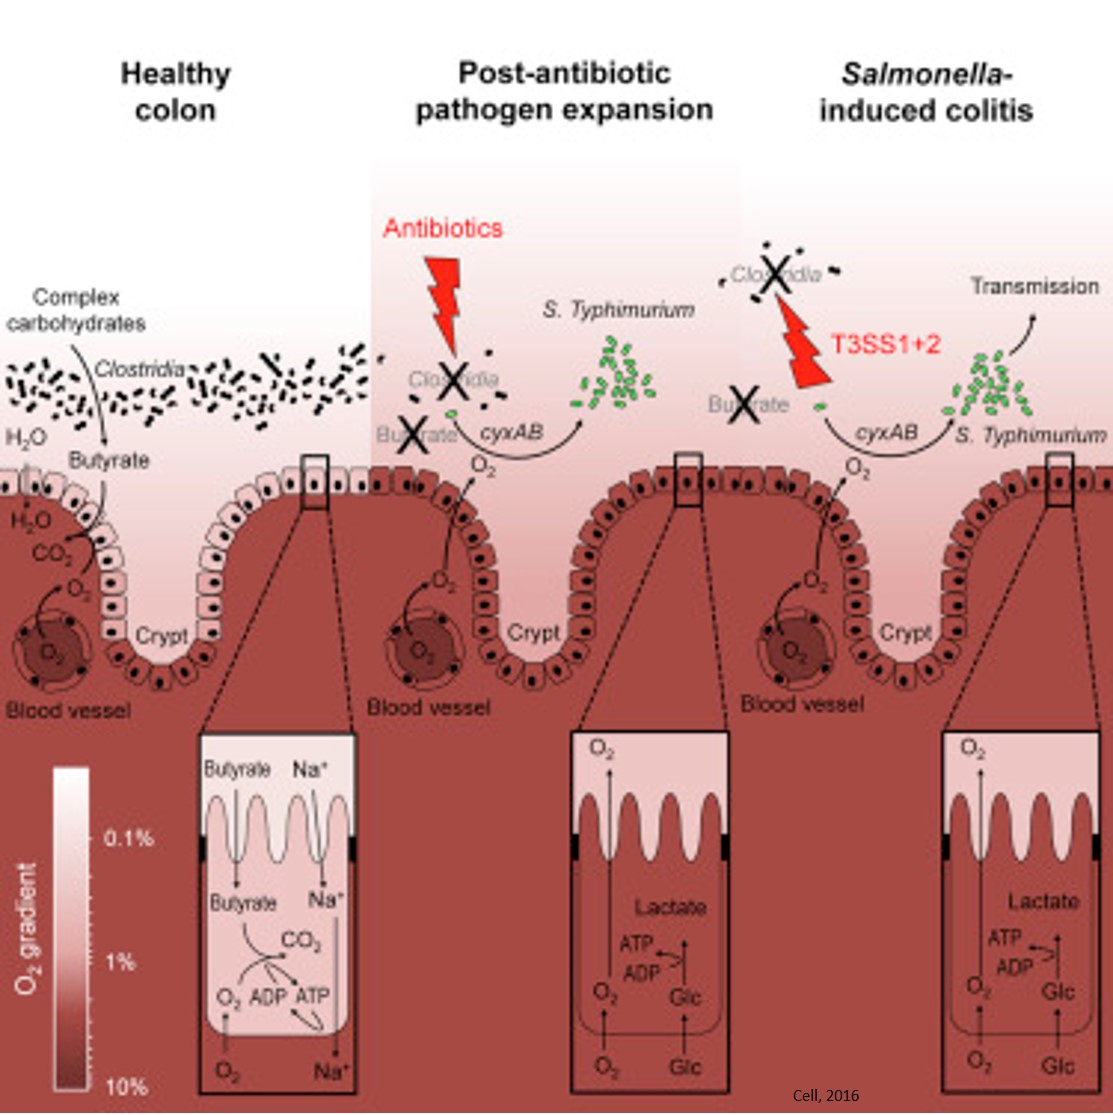 Antibiotics benefit pathogen growth by disrupting oxygen levels, fiber processing in the gut